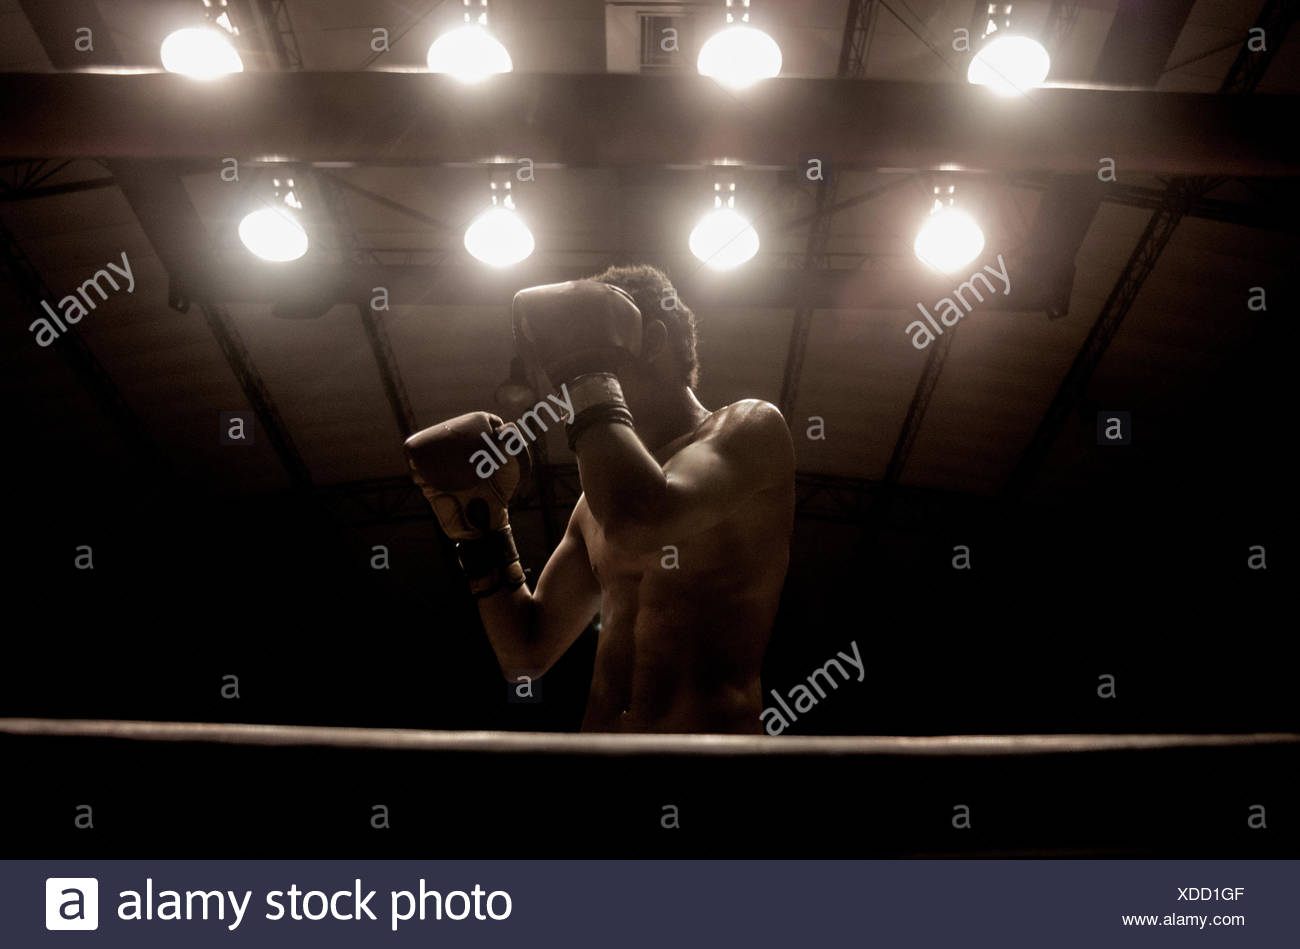 Boxer in a boxing ring with hands raised in front of his face - Stock Image